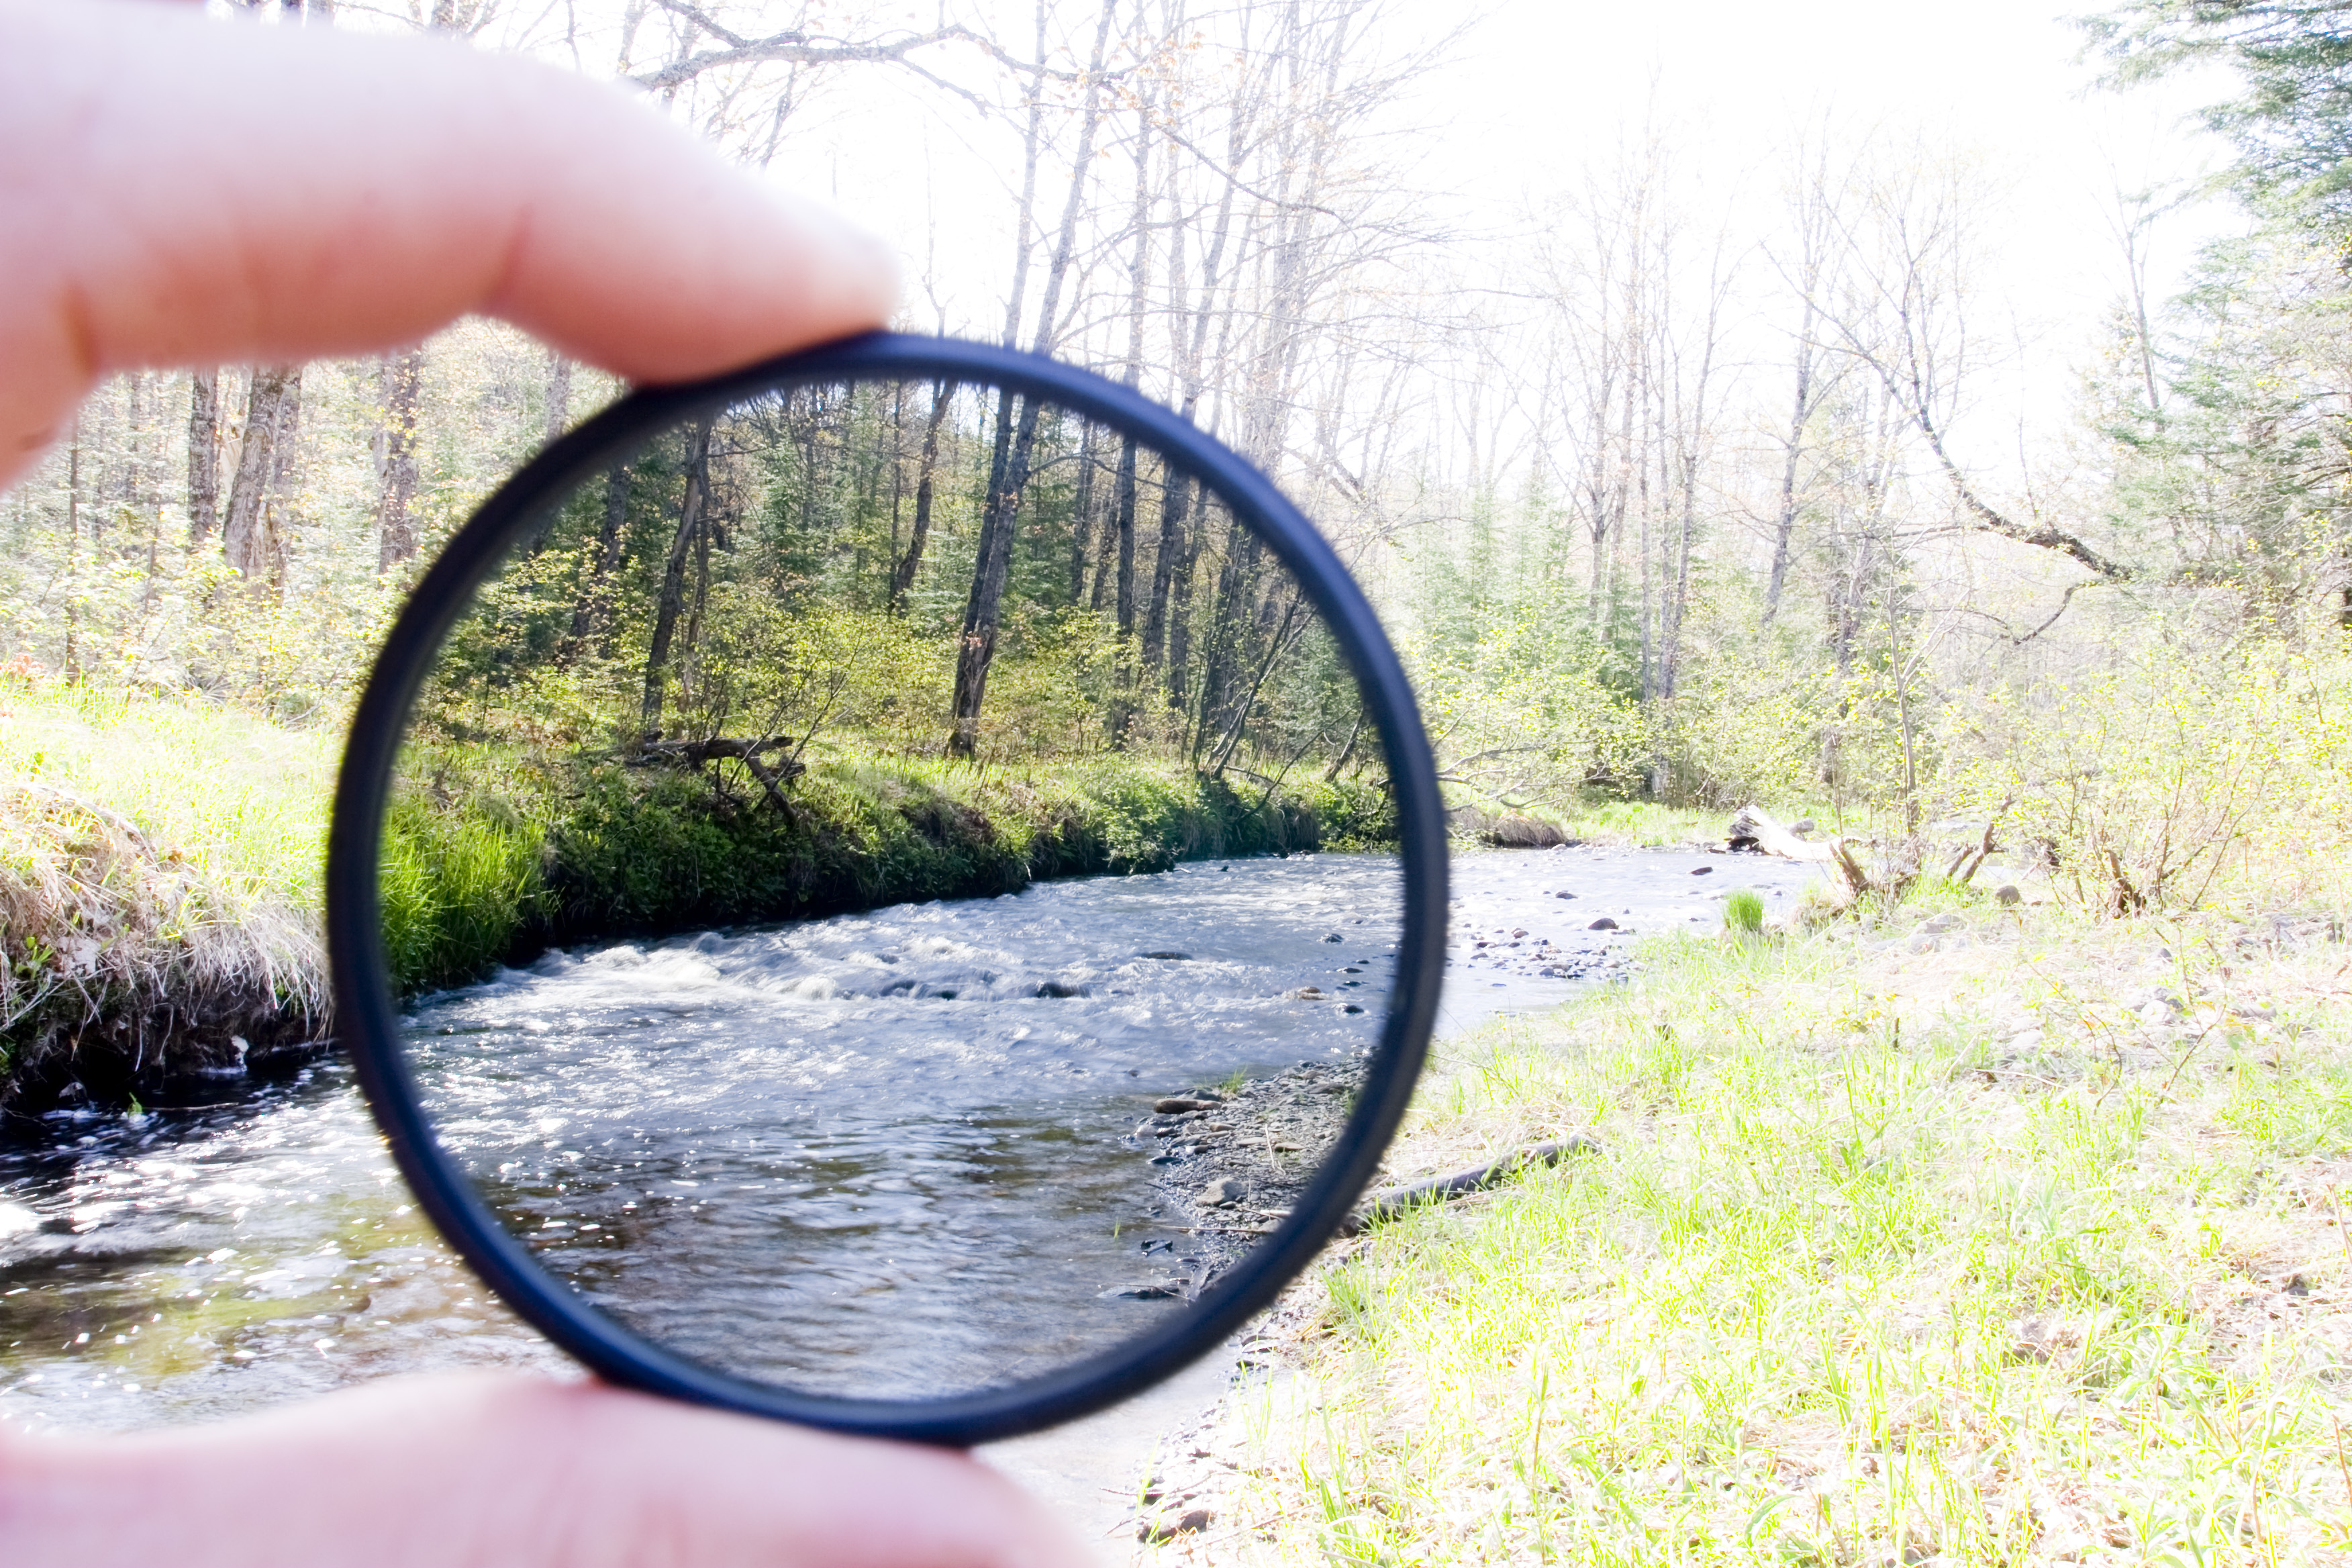 Neutral Density Filter, ND2-400 Neutrale Dichtheid Fader Variable ND Filter